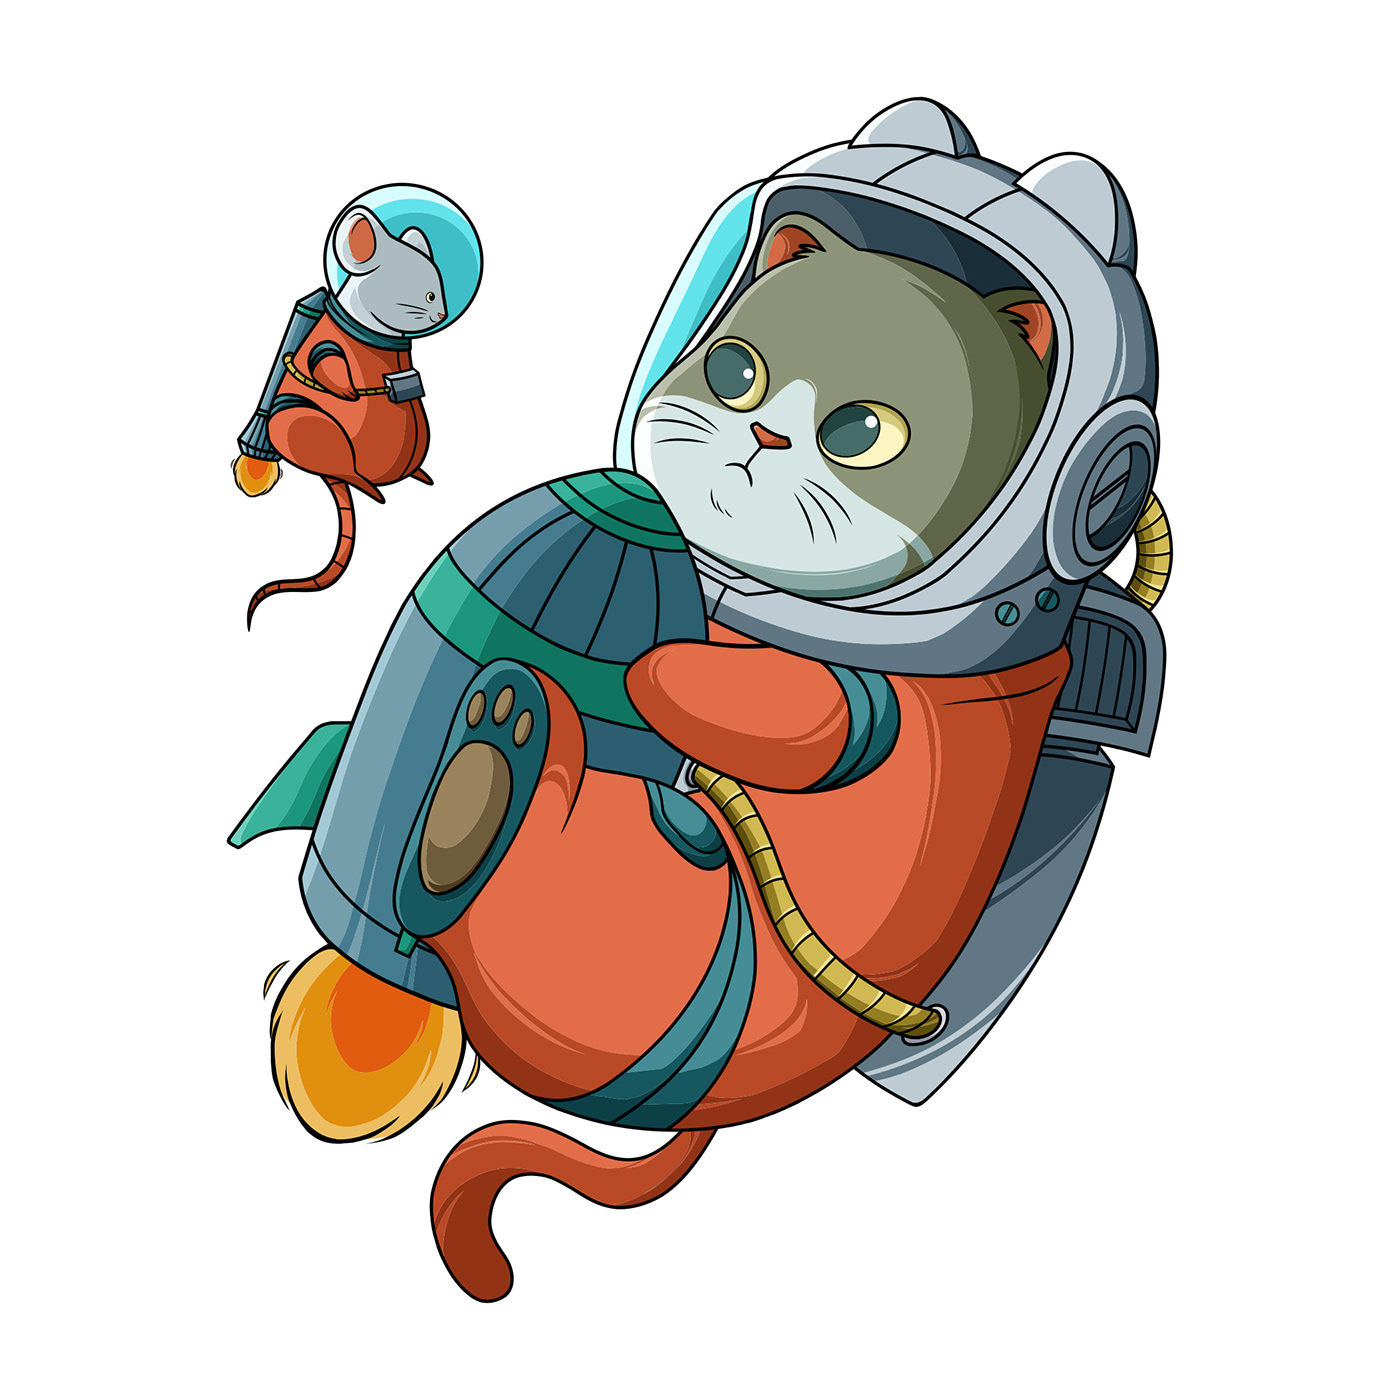 animal astronaut cartoon Cat cute Flying mouse paw rocket Space